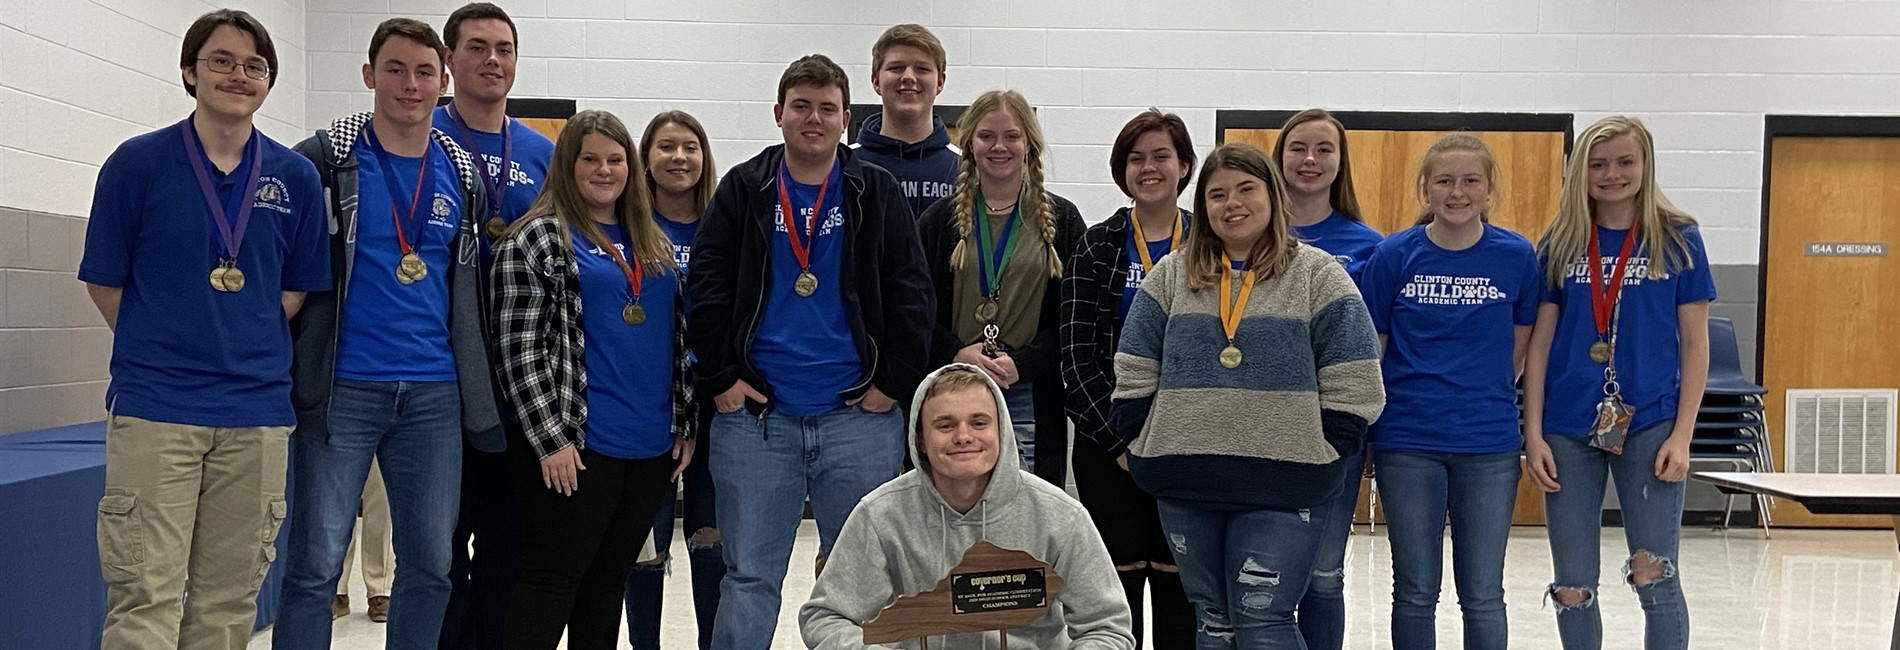 The CCHS Academic Team claimed the championship at District Governor's Cup for the 9th consecutive year!